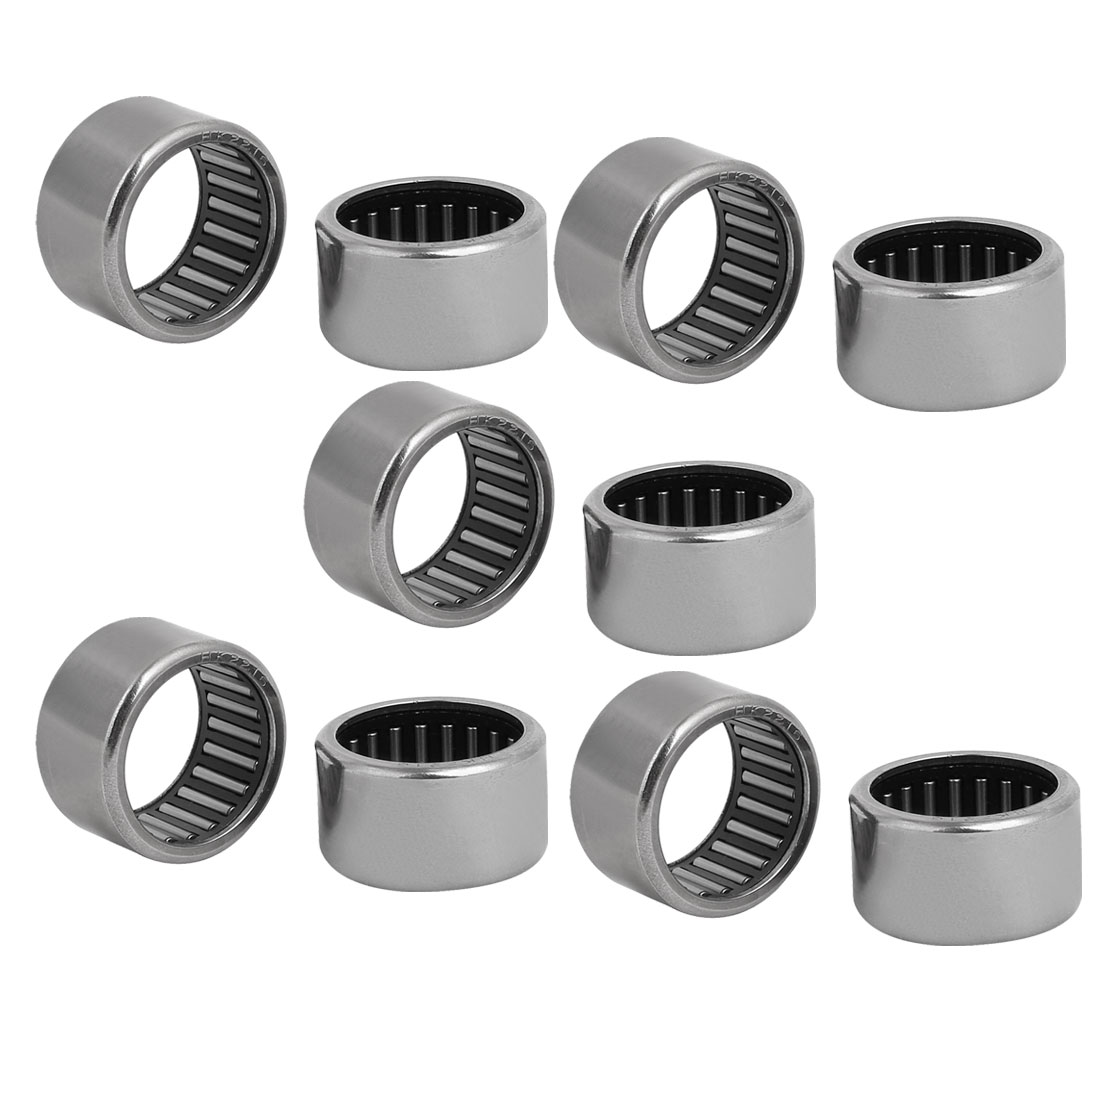 HK2216 28mmx22mmx16mm Drawn Cup Open End Needle Roller Bearing Silver Tone 10pcs